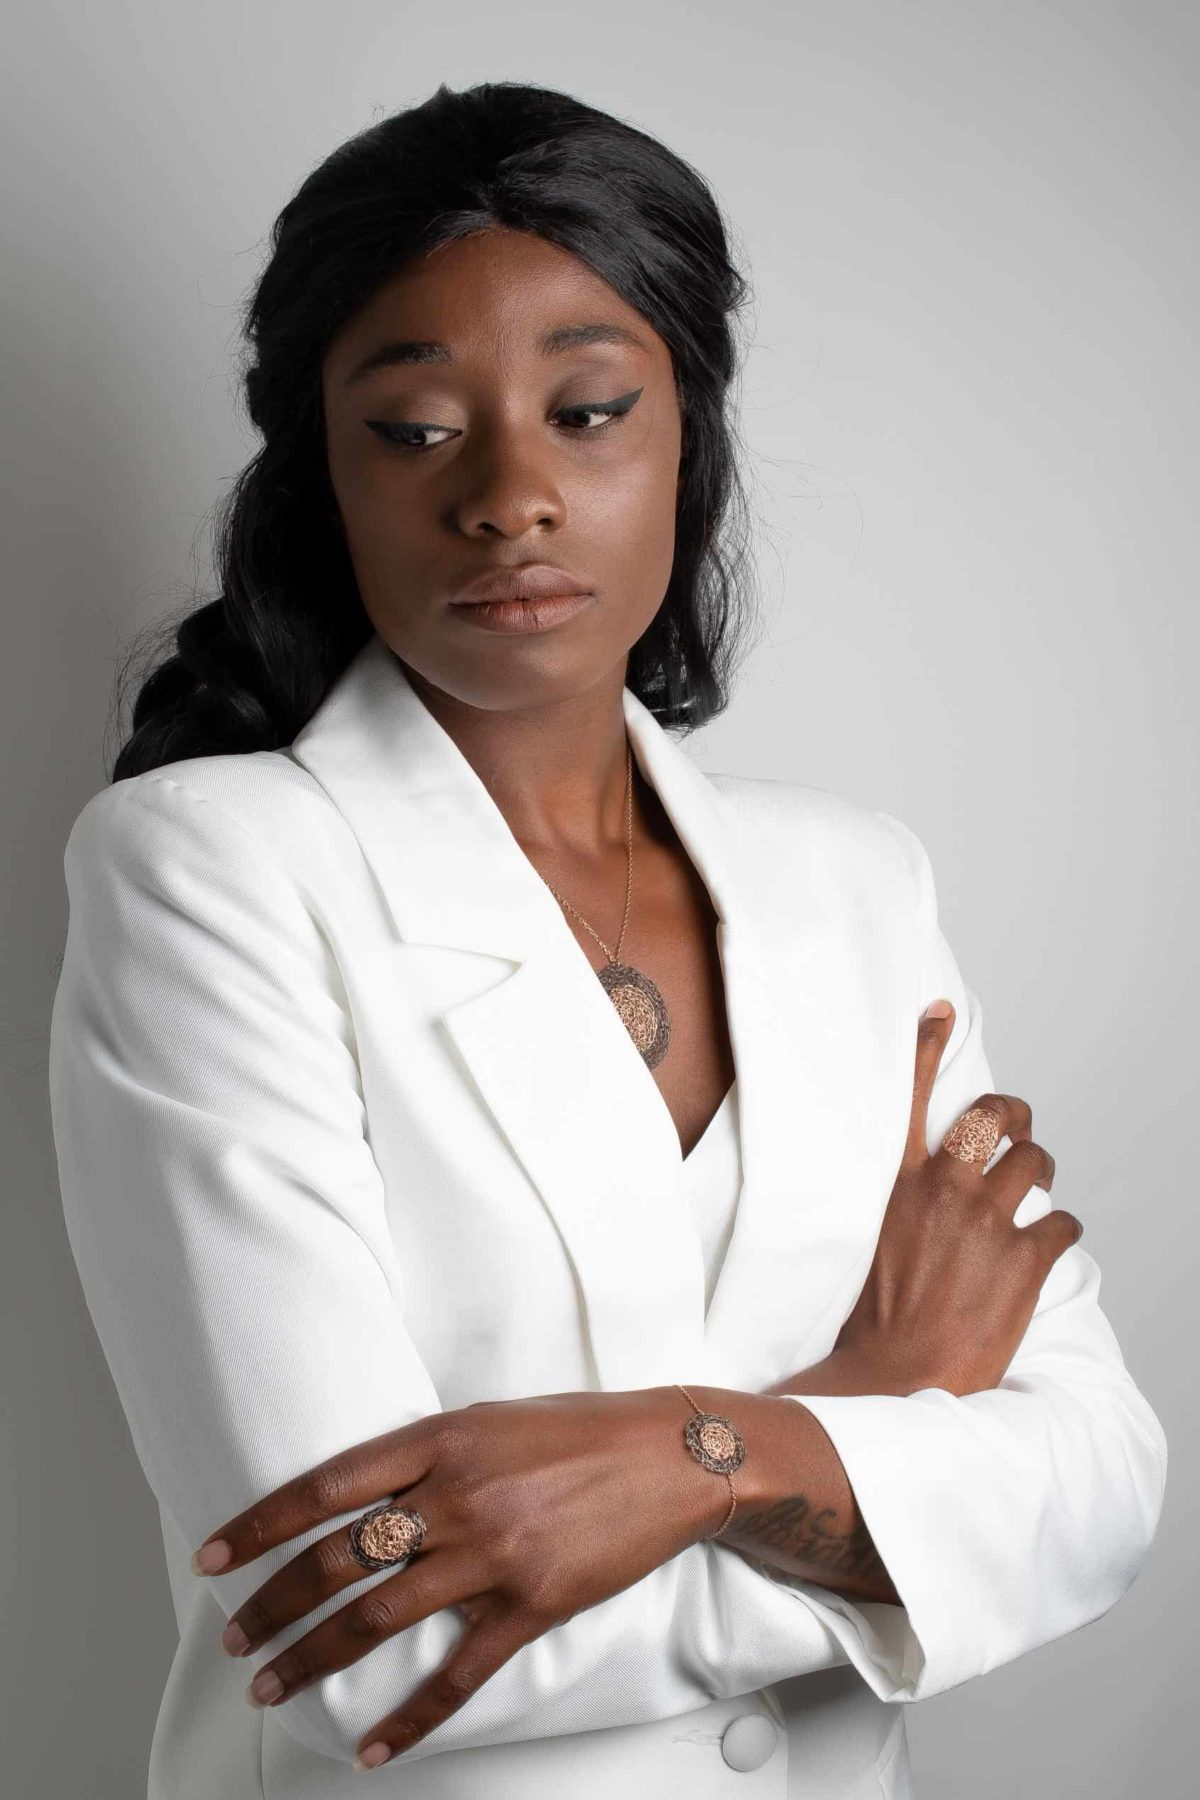 model with white clothes wearing rose gold jewelry